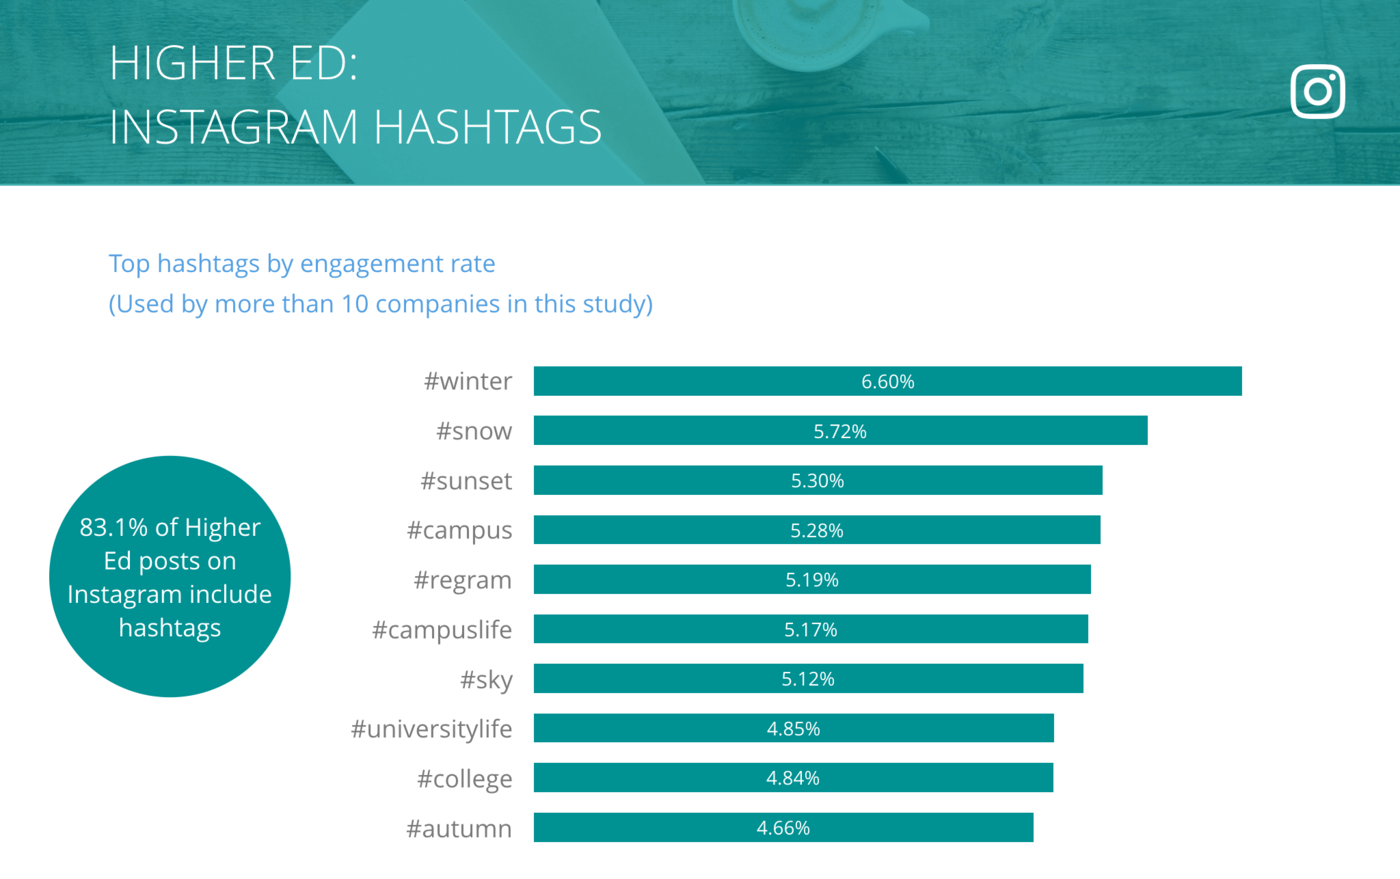 Instagram Top Hashtags by Engagement Rate per Post, Higher Ed